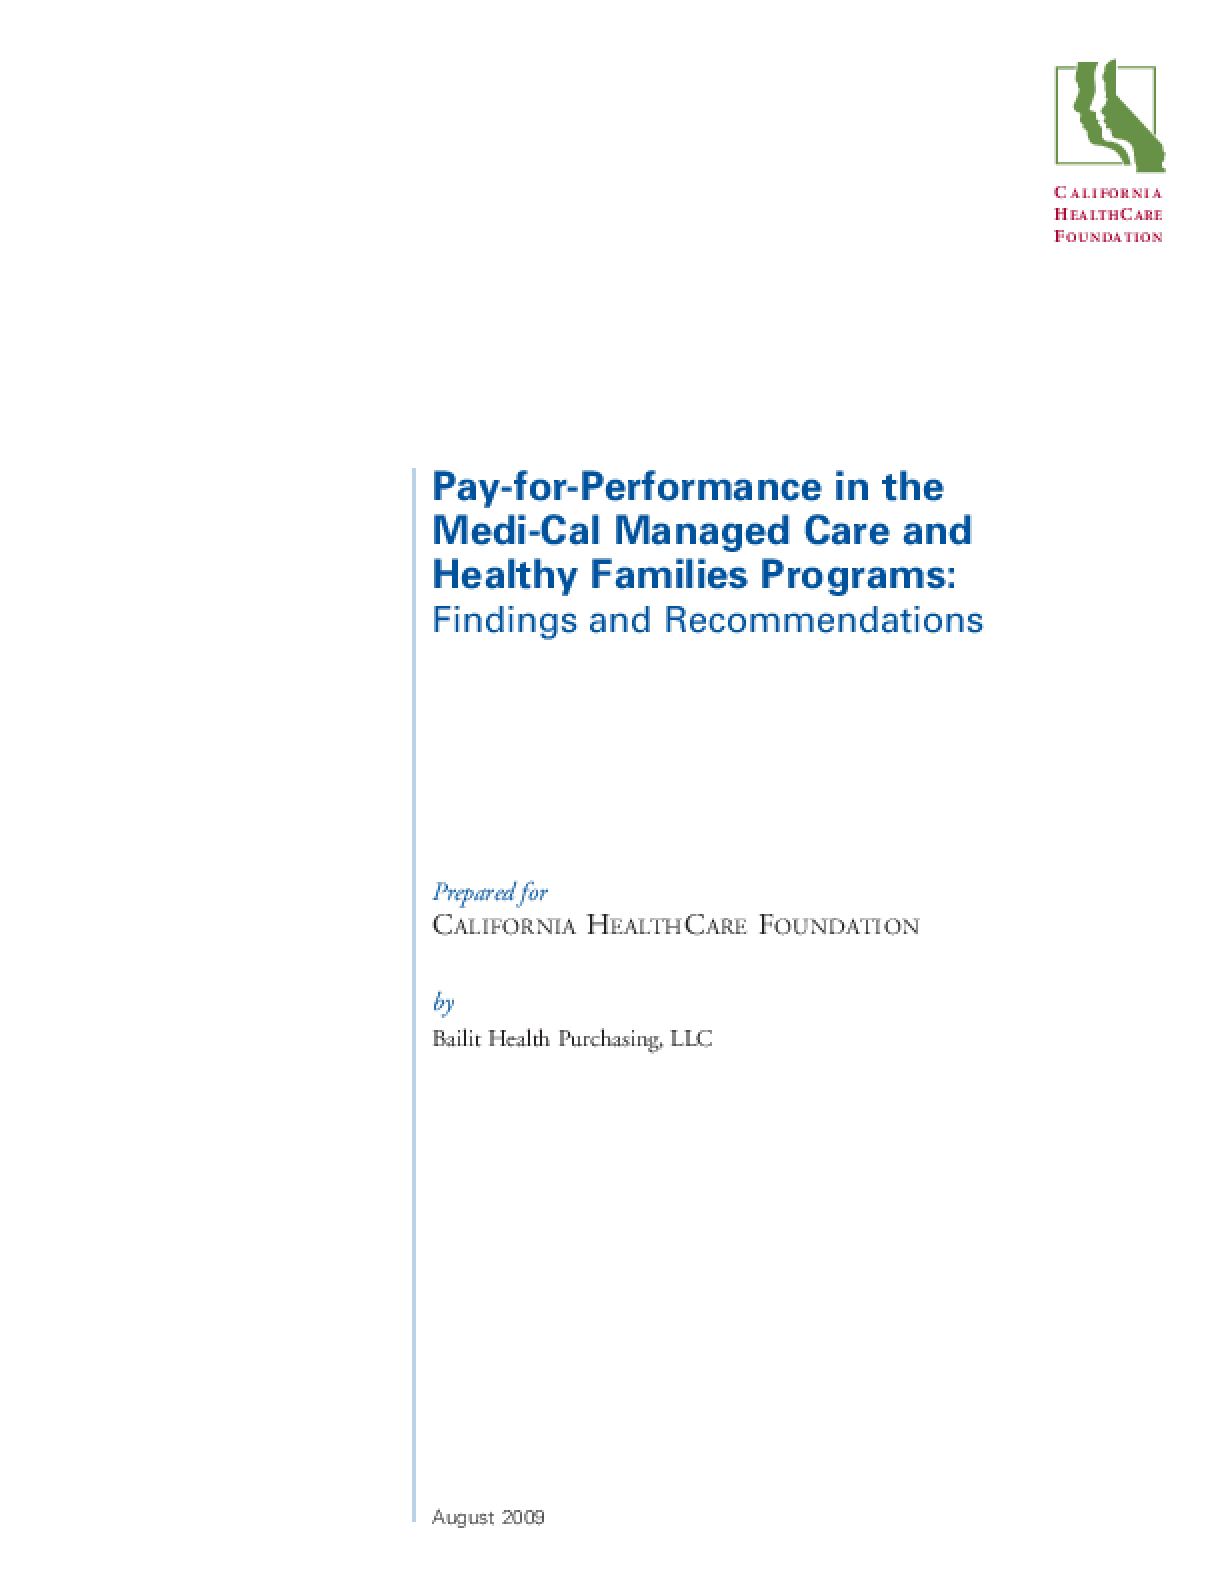 Pay-for-Performance in the Medi-Cal Managed Care and Healthy Families Programs: Findings and Recommendations